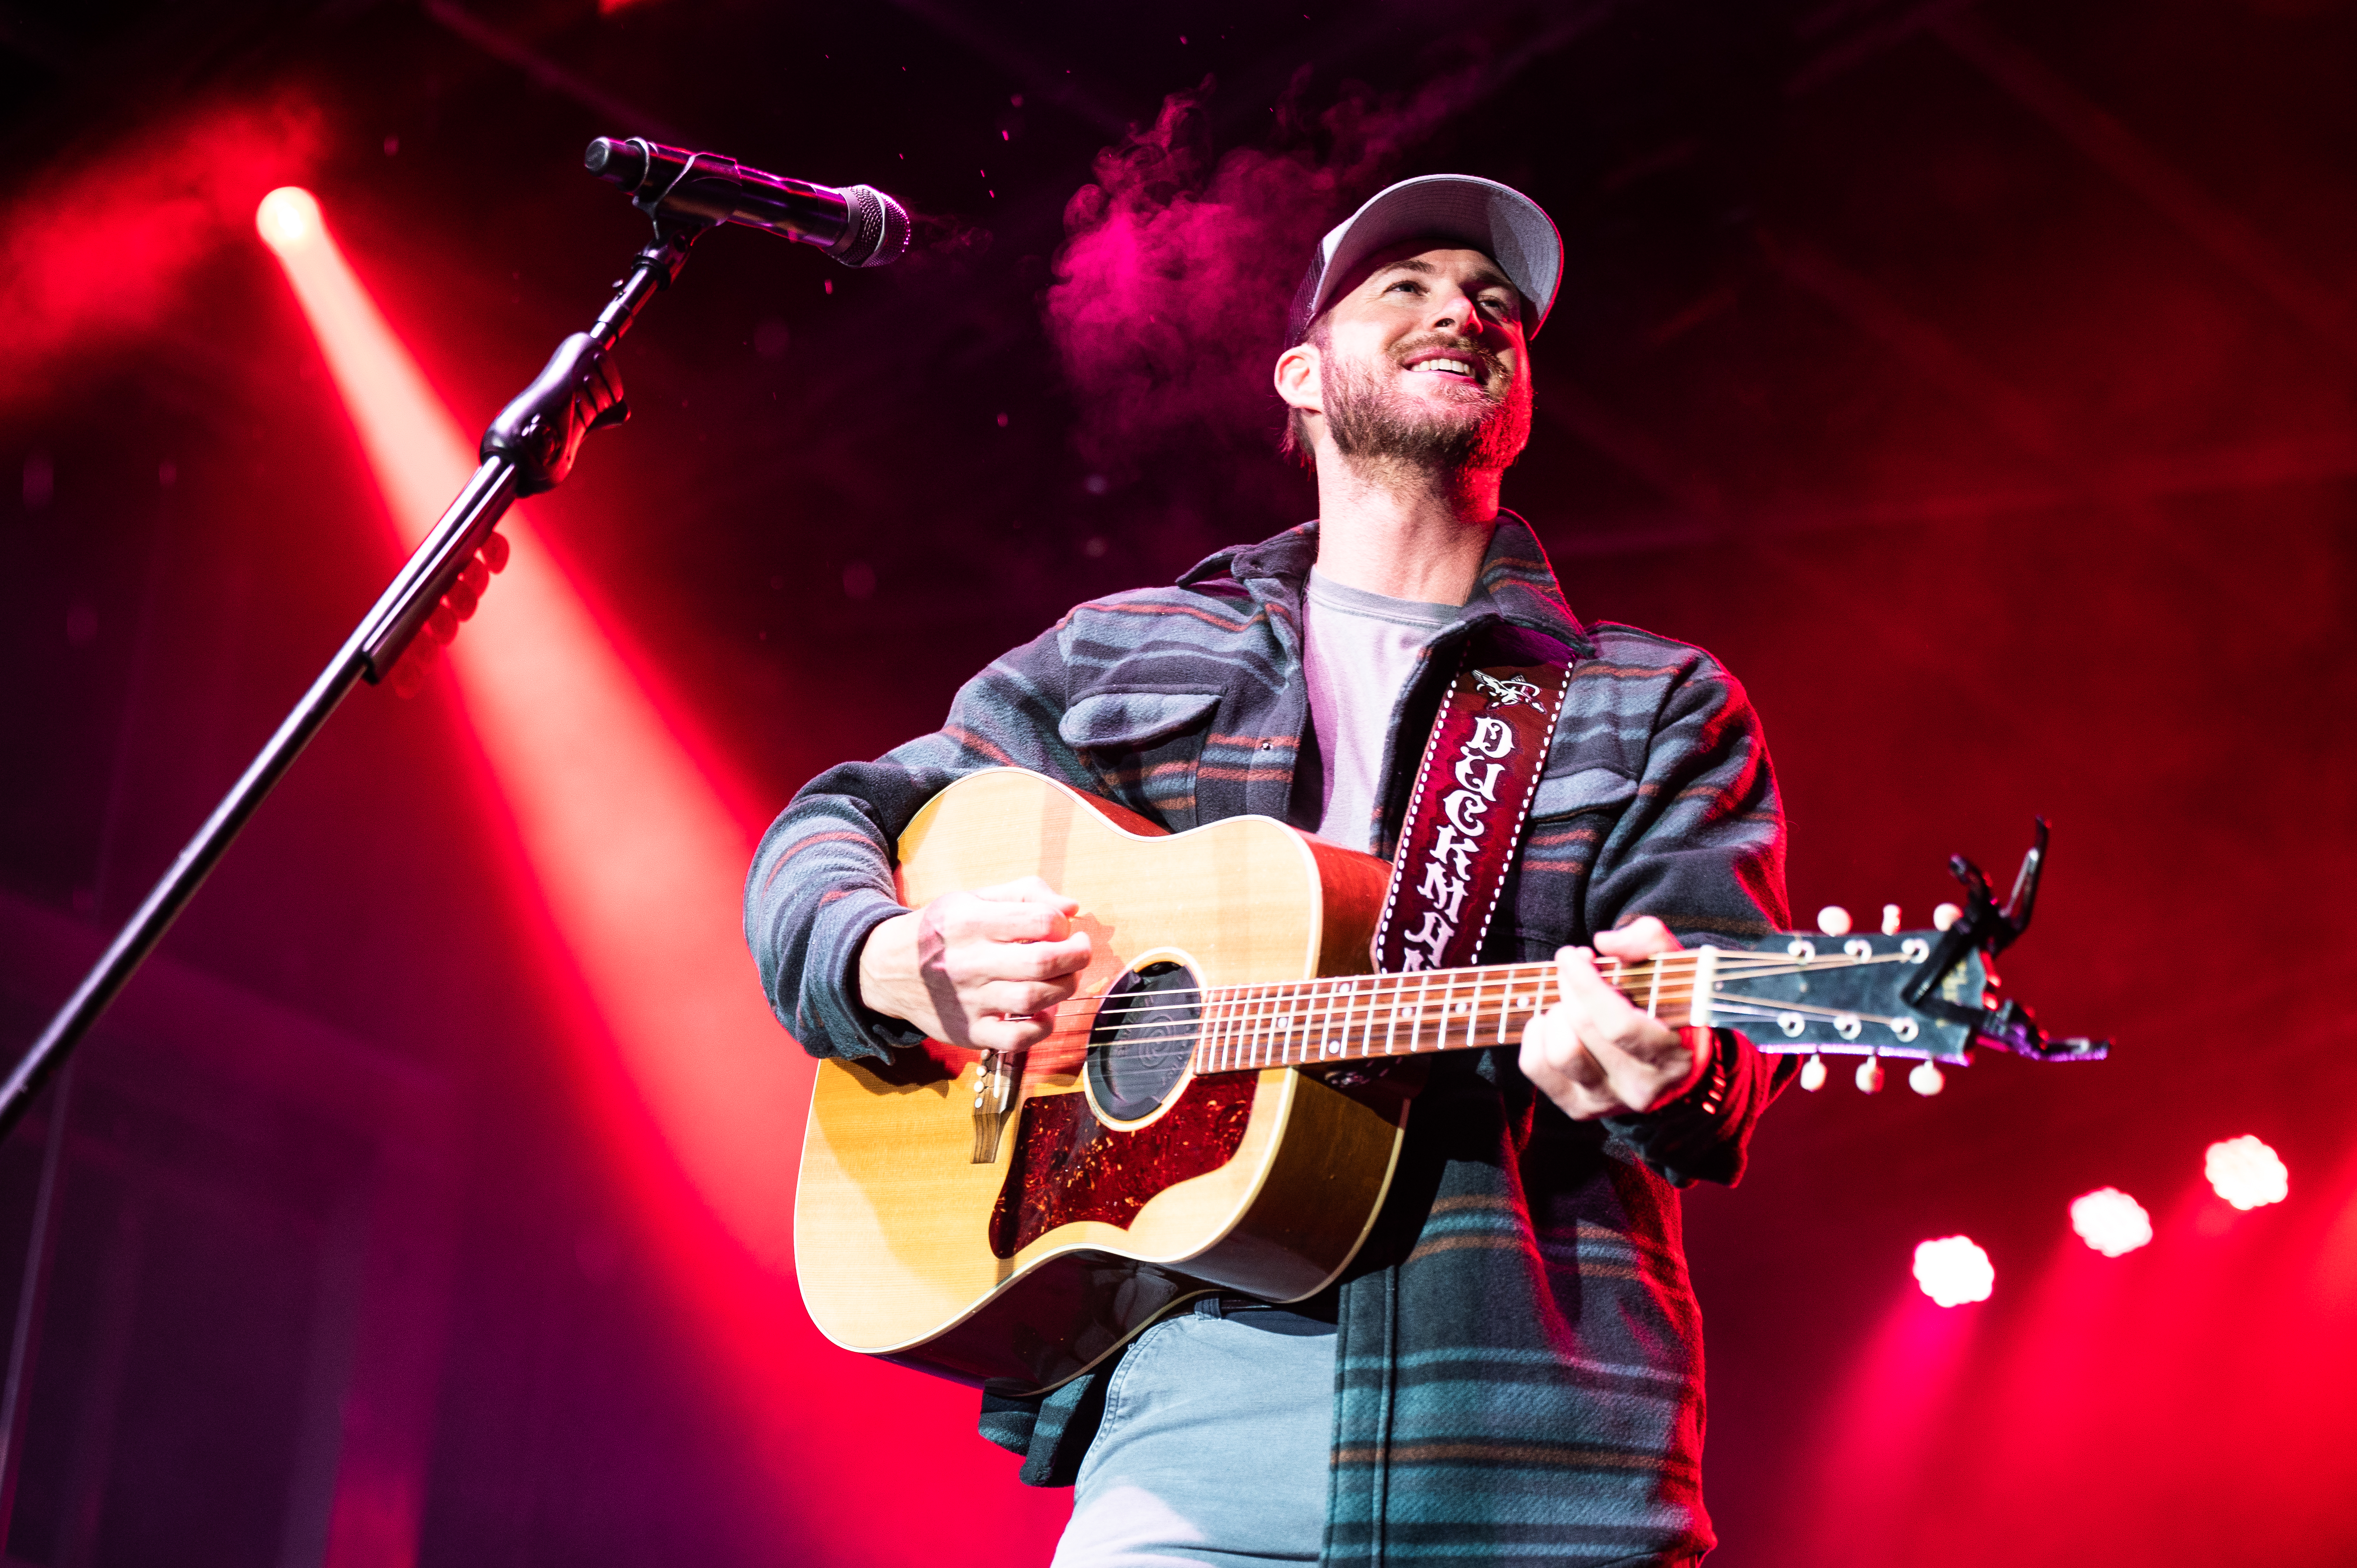 Riley Green performs at The Riley Green and Friends Benefit Concert held on Nov. 14, 2019 in the Jim Case Stadium at Jacksonville State University. Green has won his first big award for 55th ACM Awards. (Matt Reynolds/JSU)